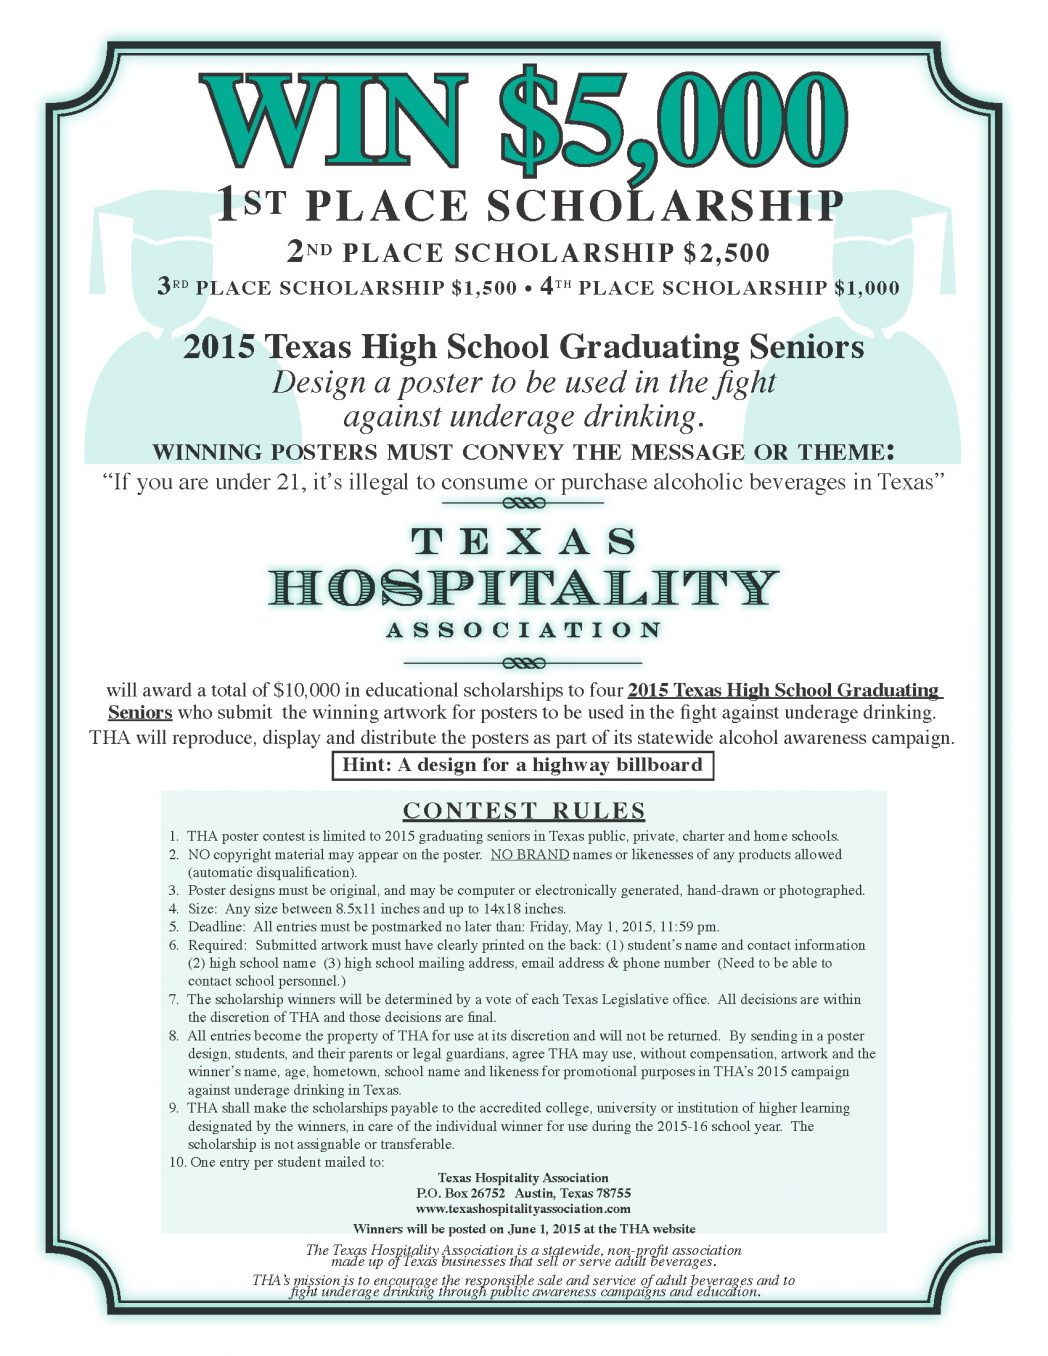 009 Easy Scholarships For High School Seniors Without Essays Research Students No Essay Scholarshi 1048x1356 Stunning Requirements Required In Texas Full